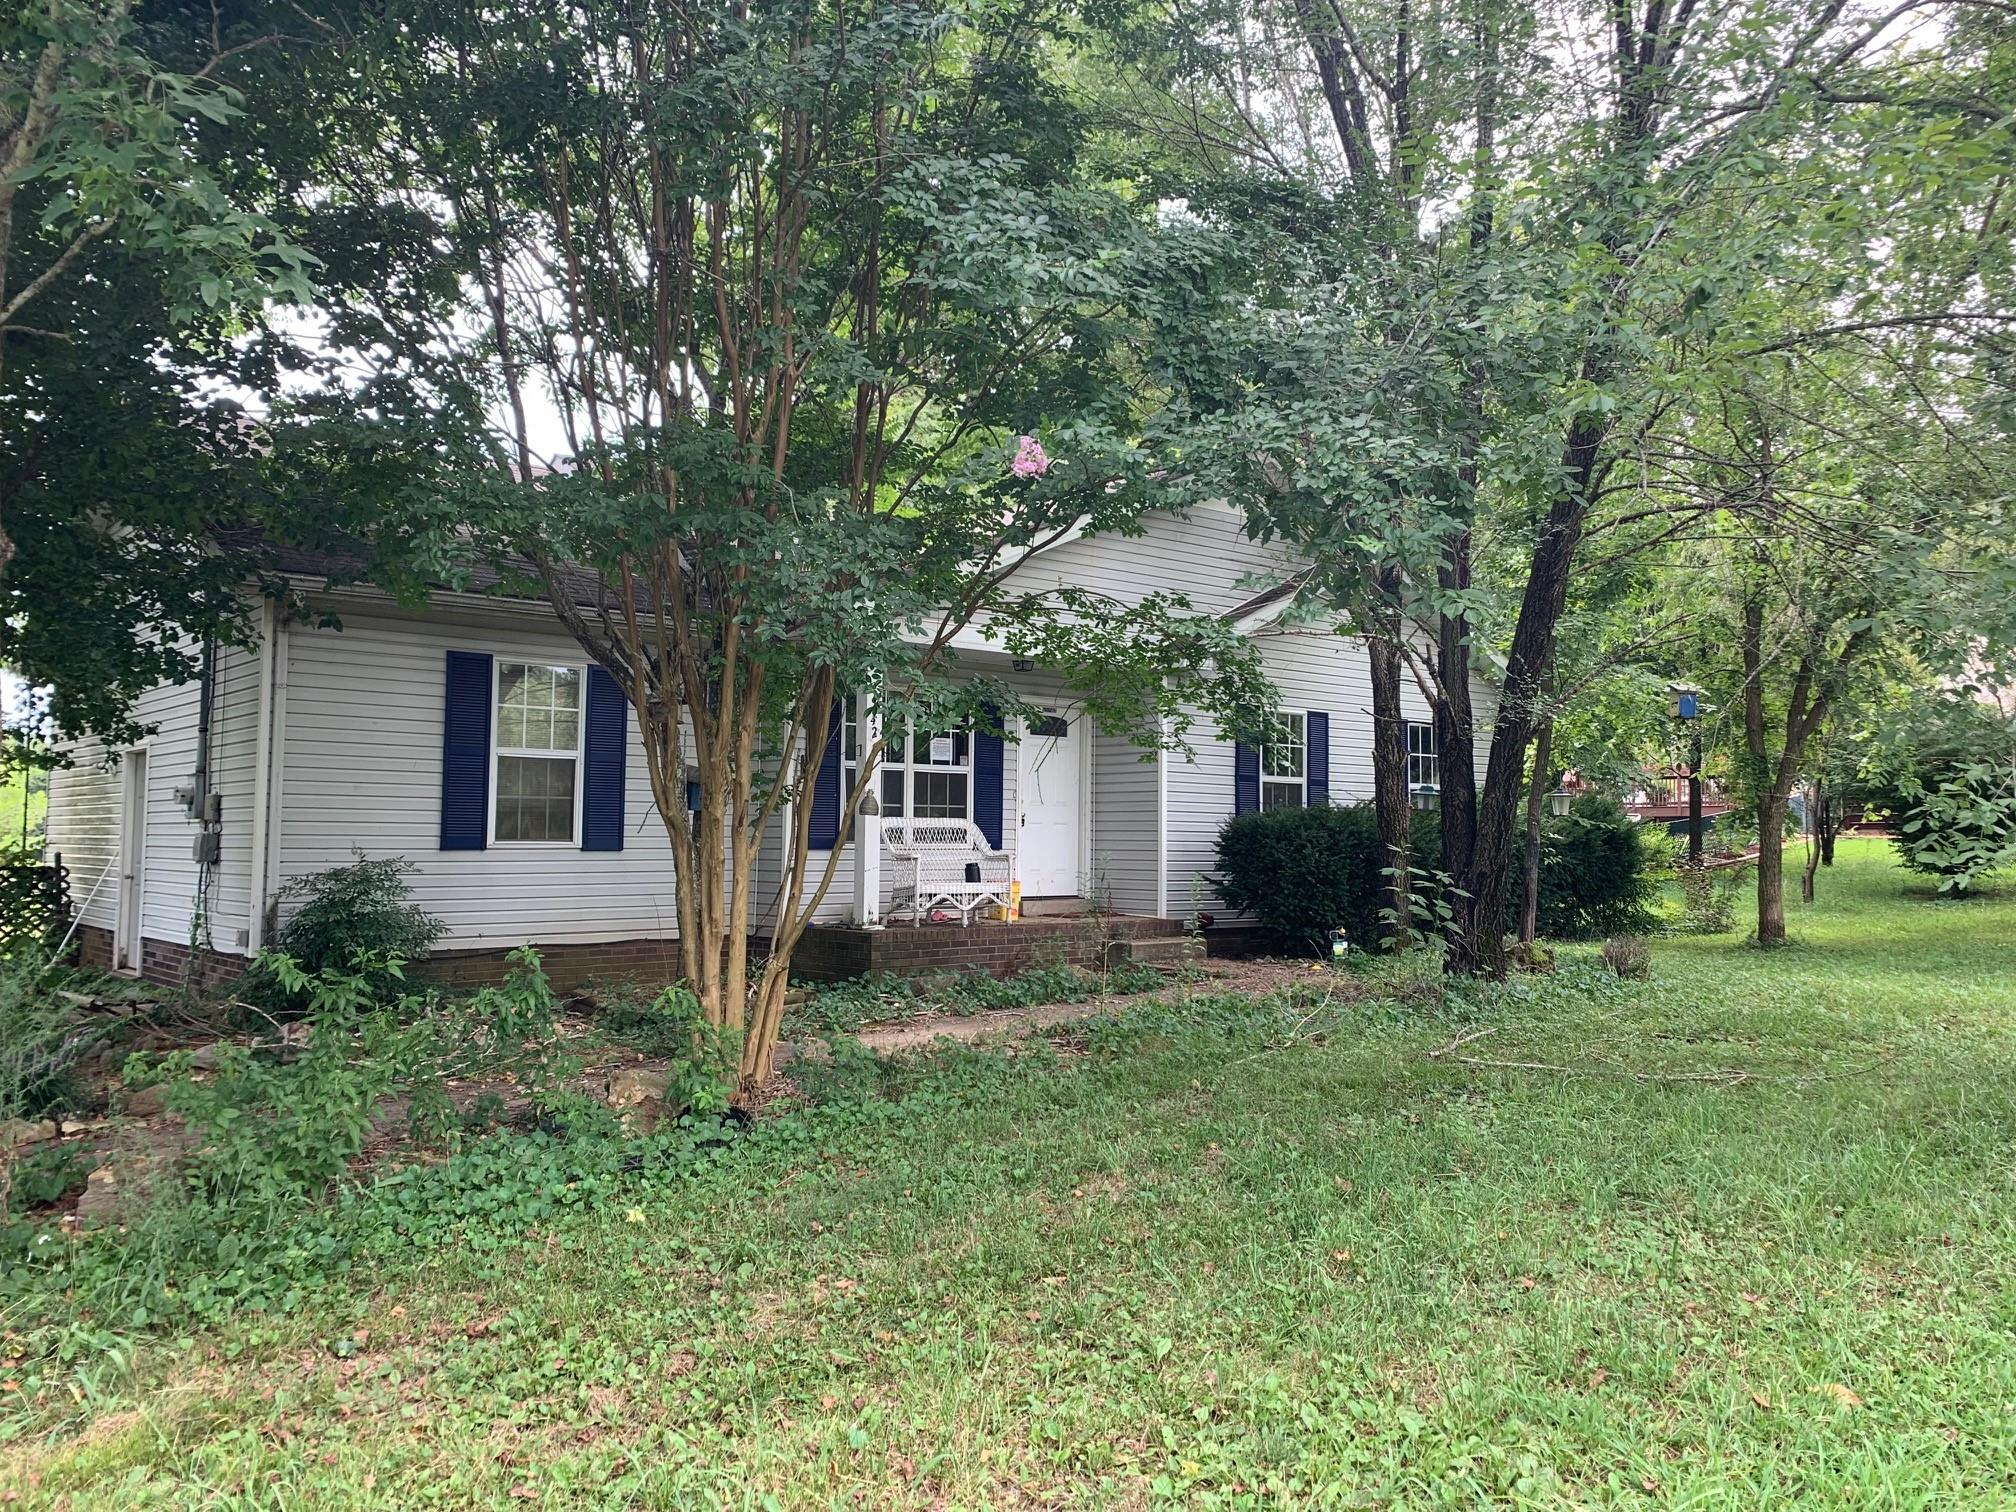 2442 Chester Harris Rd, Woodlawn, TN 37191 - Woodlawn, TN real estate listing